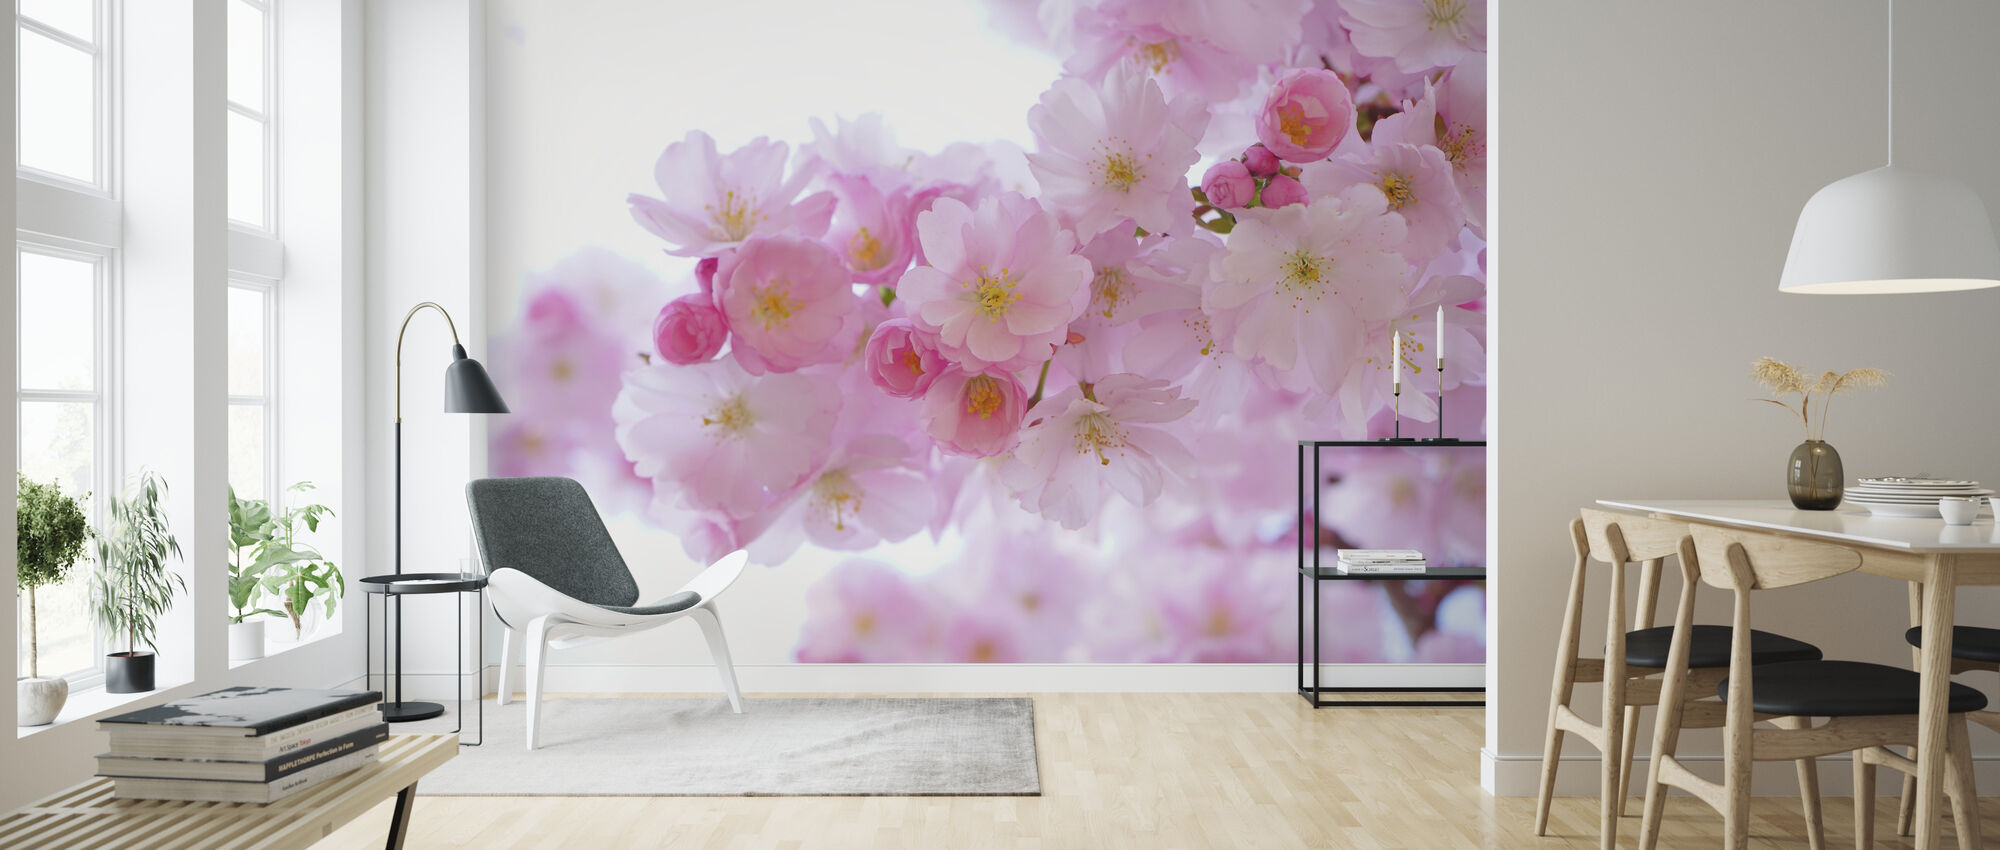 Blossom Cherry Flowers - Wallpaper - Living Room